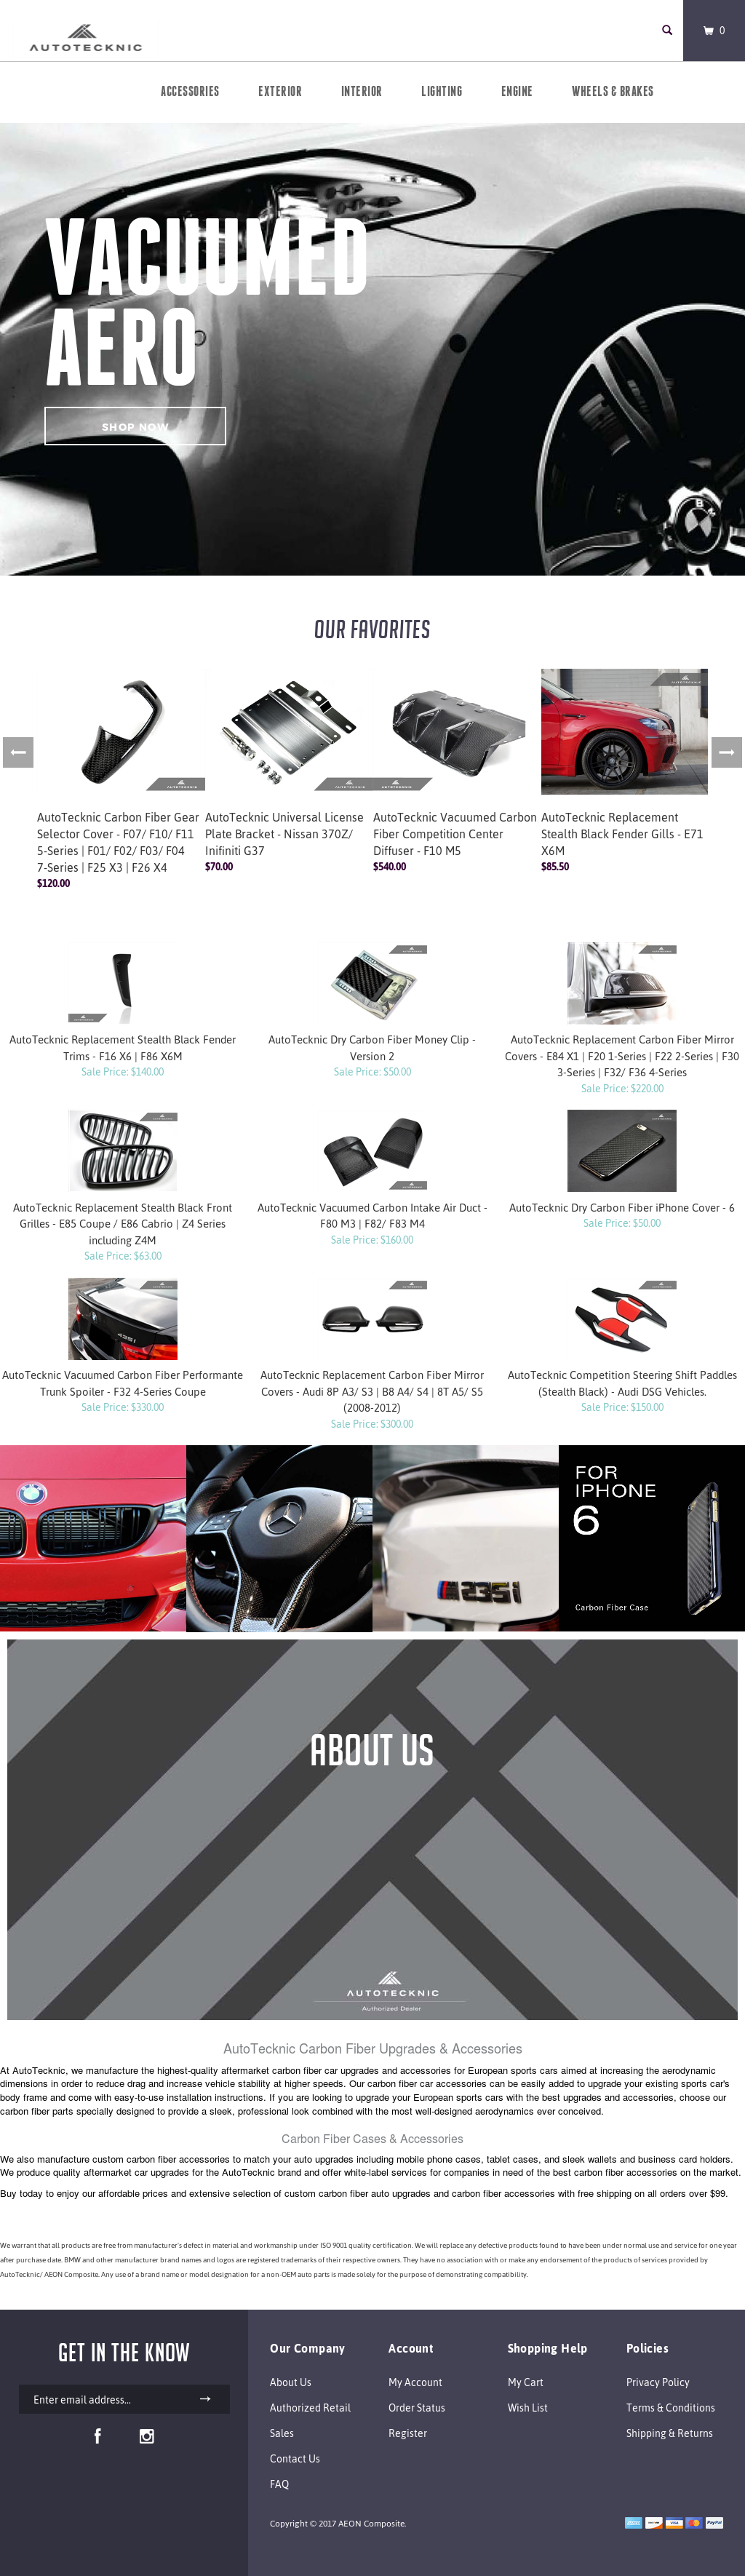 Dorable Auto Parts Names Pictures Gift - Wiring Diagram Ideas ...